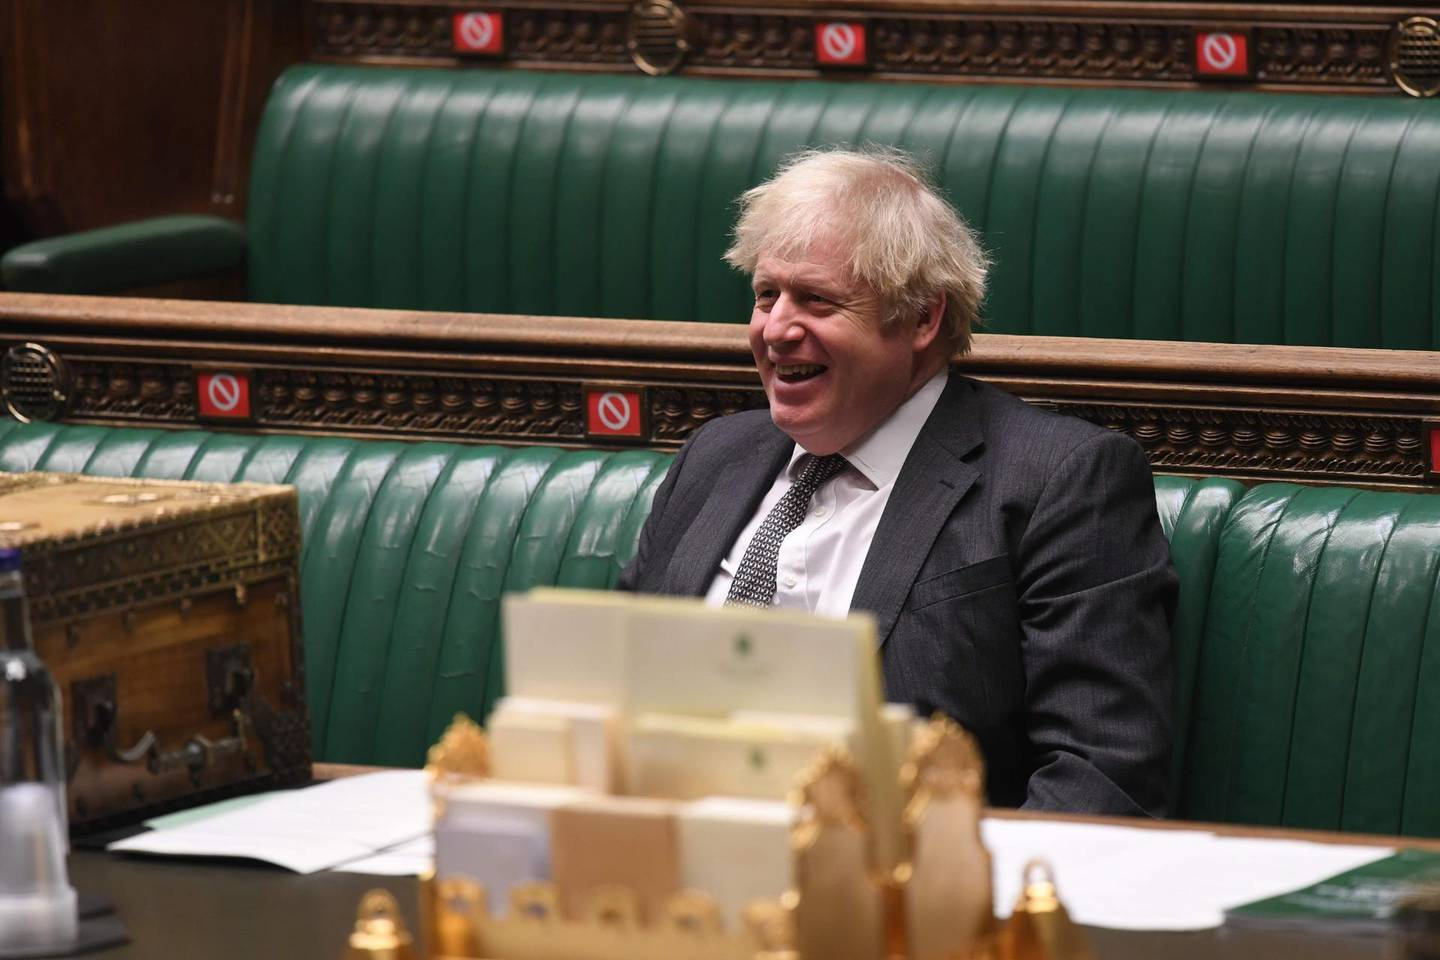 """A handout photograph released by the UK Parliament shows Britain's Prime Minister Boris Johnson smiling during the debate on the second reading of the EU Future Relationship Bill in the House of Commons in London on December 30, 2020. The lower House of Commons voted overwhelmingly by 521-73 to back it, despite serious opposition misgivings, and the bill is expected to pass the House of Lords later Wednesday in an unusually rapid procedure. - RESTRICTED TO EDITORIAL USE - NO USE FOR ENTERTAINMENT, SATIRICAL, ADVERTISING PURPOSES - MANDATORY CREDIT """" AFP PHOTO / Jessica Taylor /UK Parliament""""  / AFP / UK PARLIAMENT / JESSICA TAYLOR / RESTRICTED TO EDITORIAL USE - NO USE FOR ENTERTAINMENT, SATIRICAL, ADVERTISING PURPOSES - MANDATORY CREDIT """" AFP PHOTO / Jessica Taylor /UK Parliament"""""""